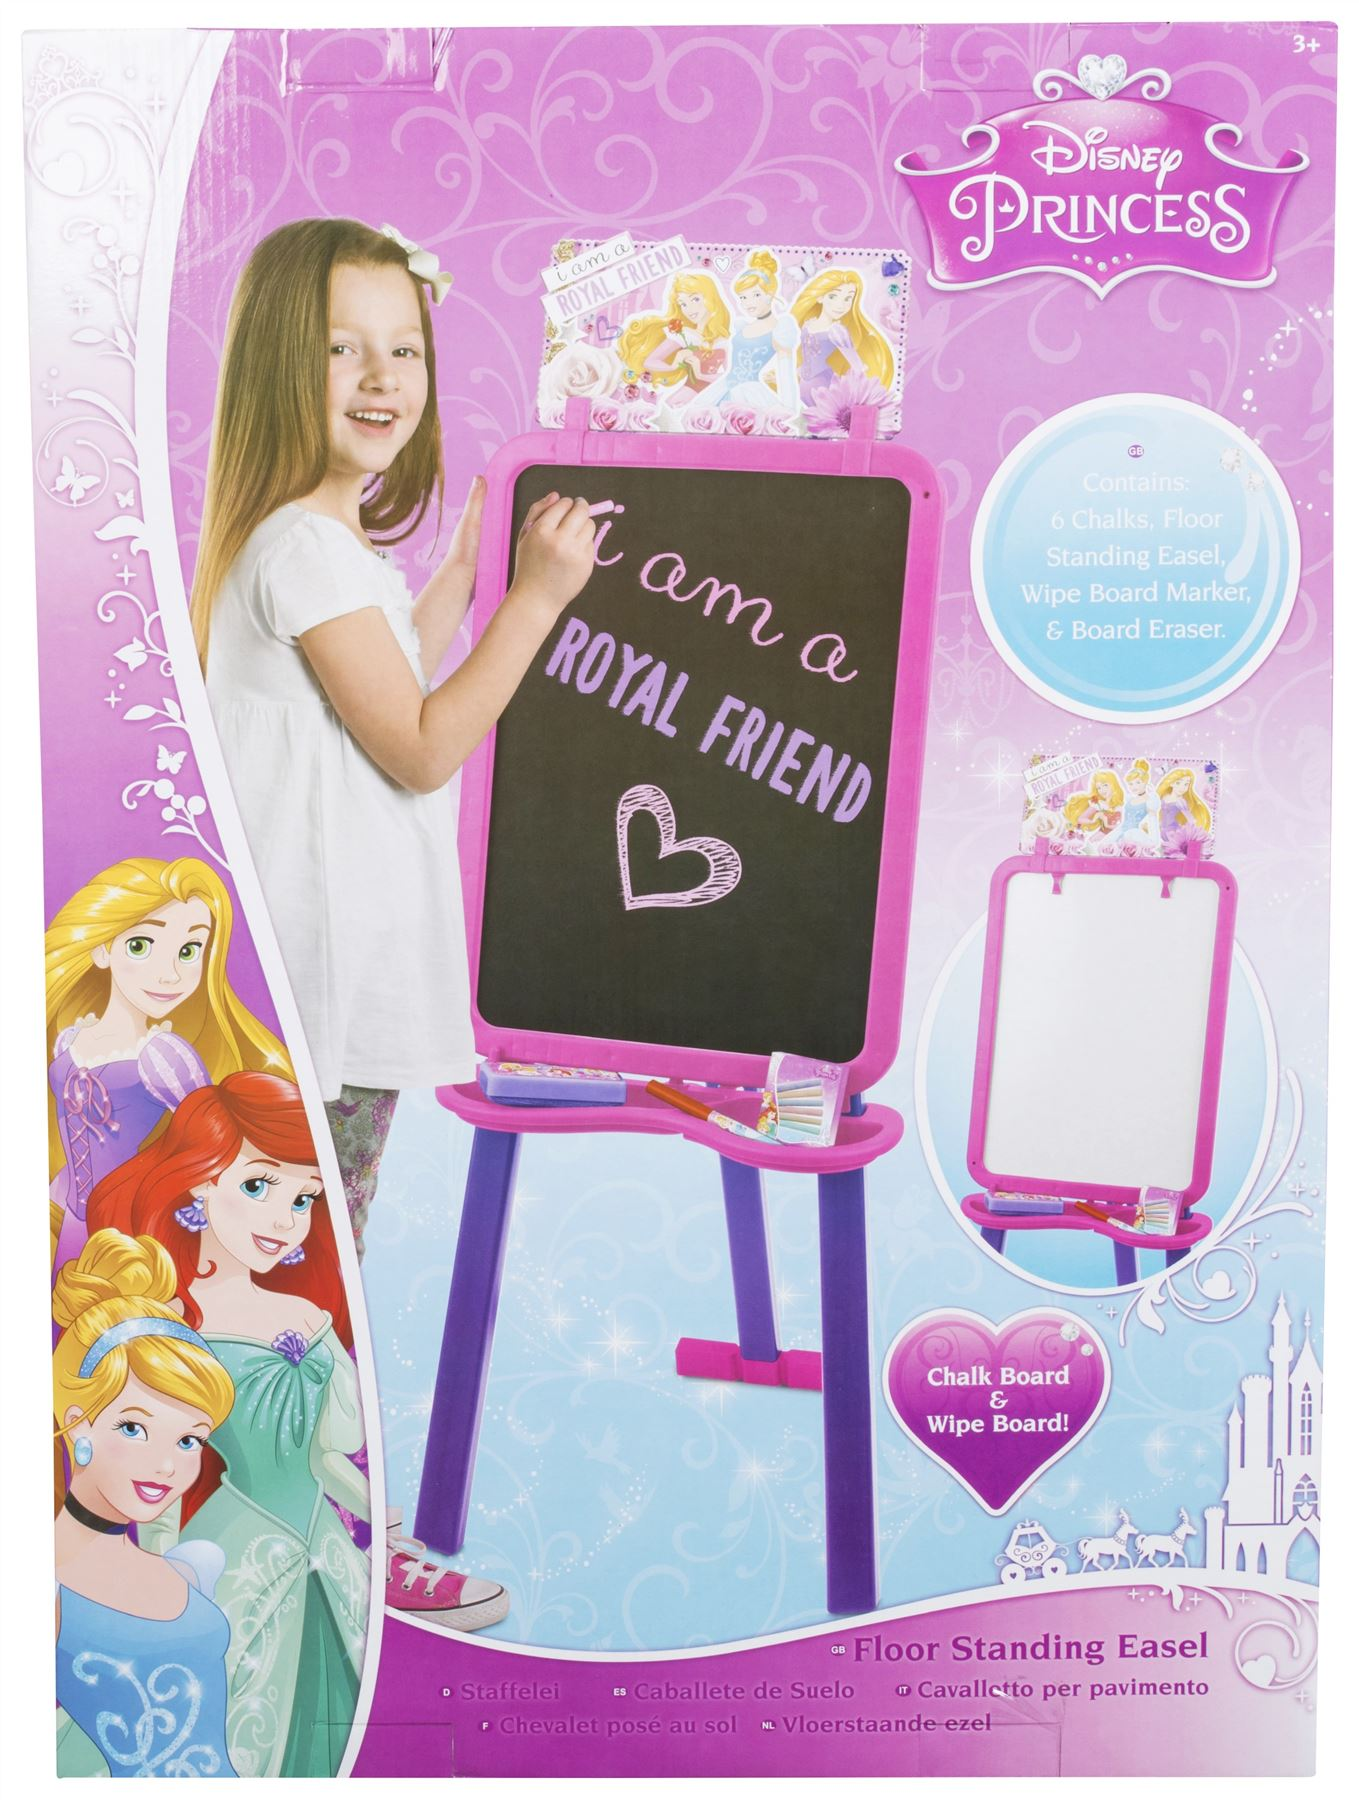 Disney Princess Standing Easel Toy Ebay